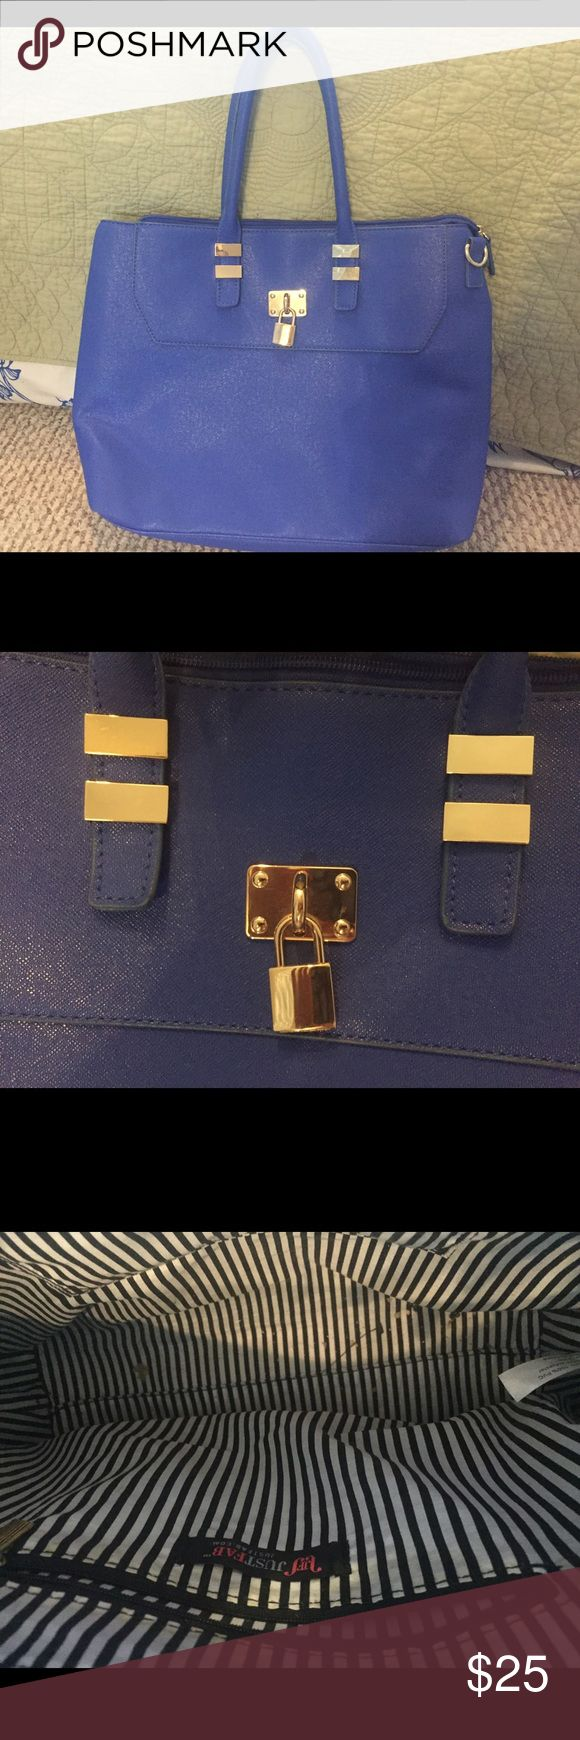 JustFab bright blue tote bag Barely used, beautiful bright blue bag from JustFab JustFab Bags Totes